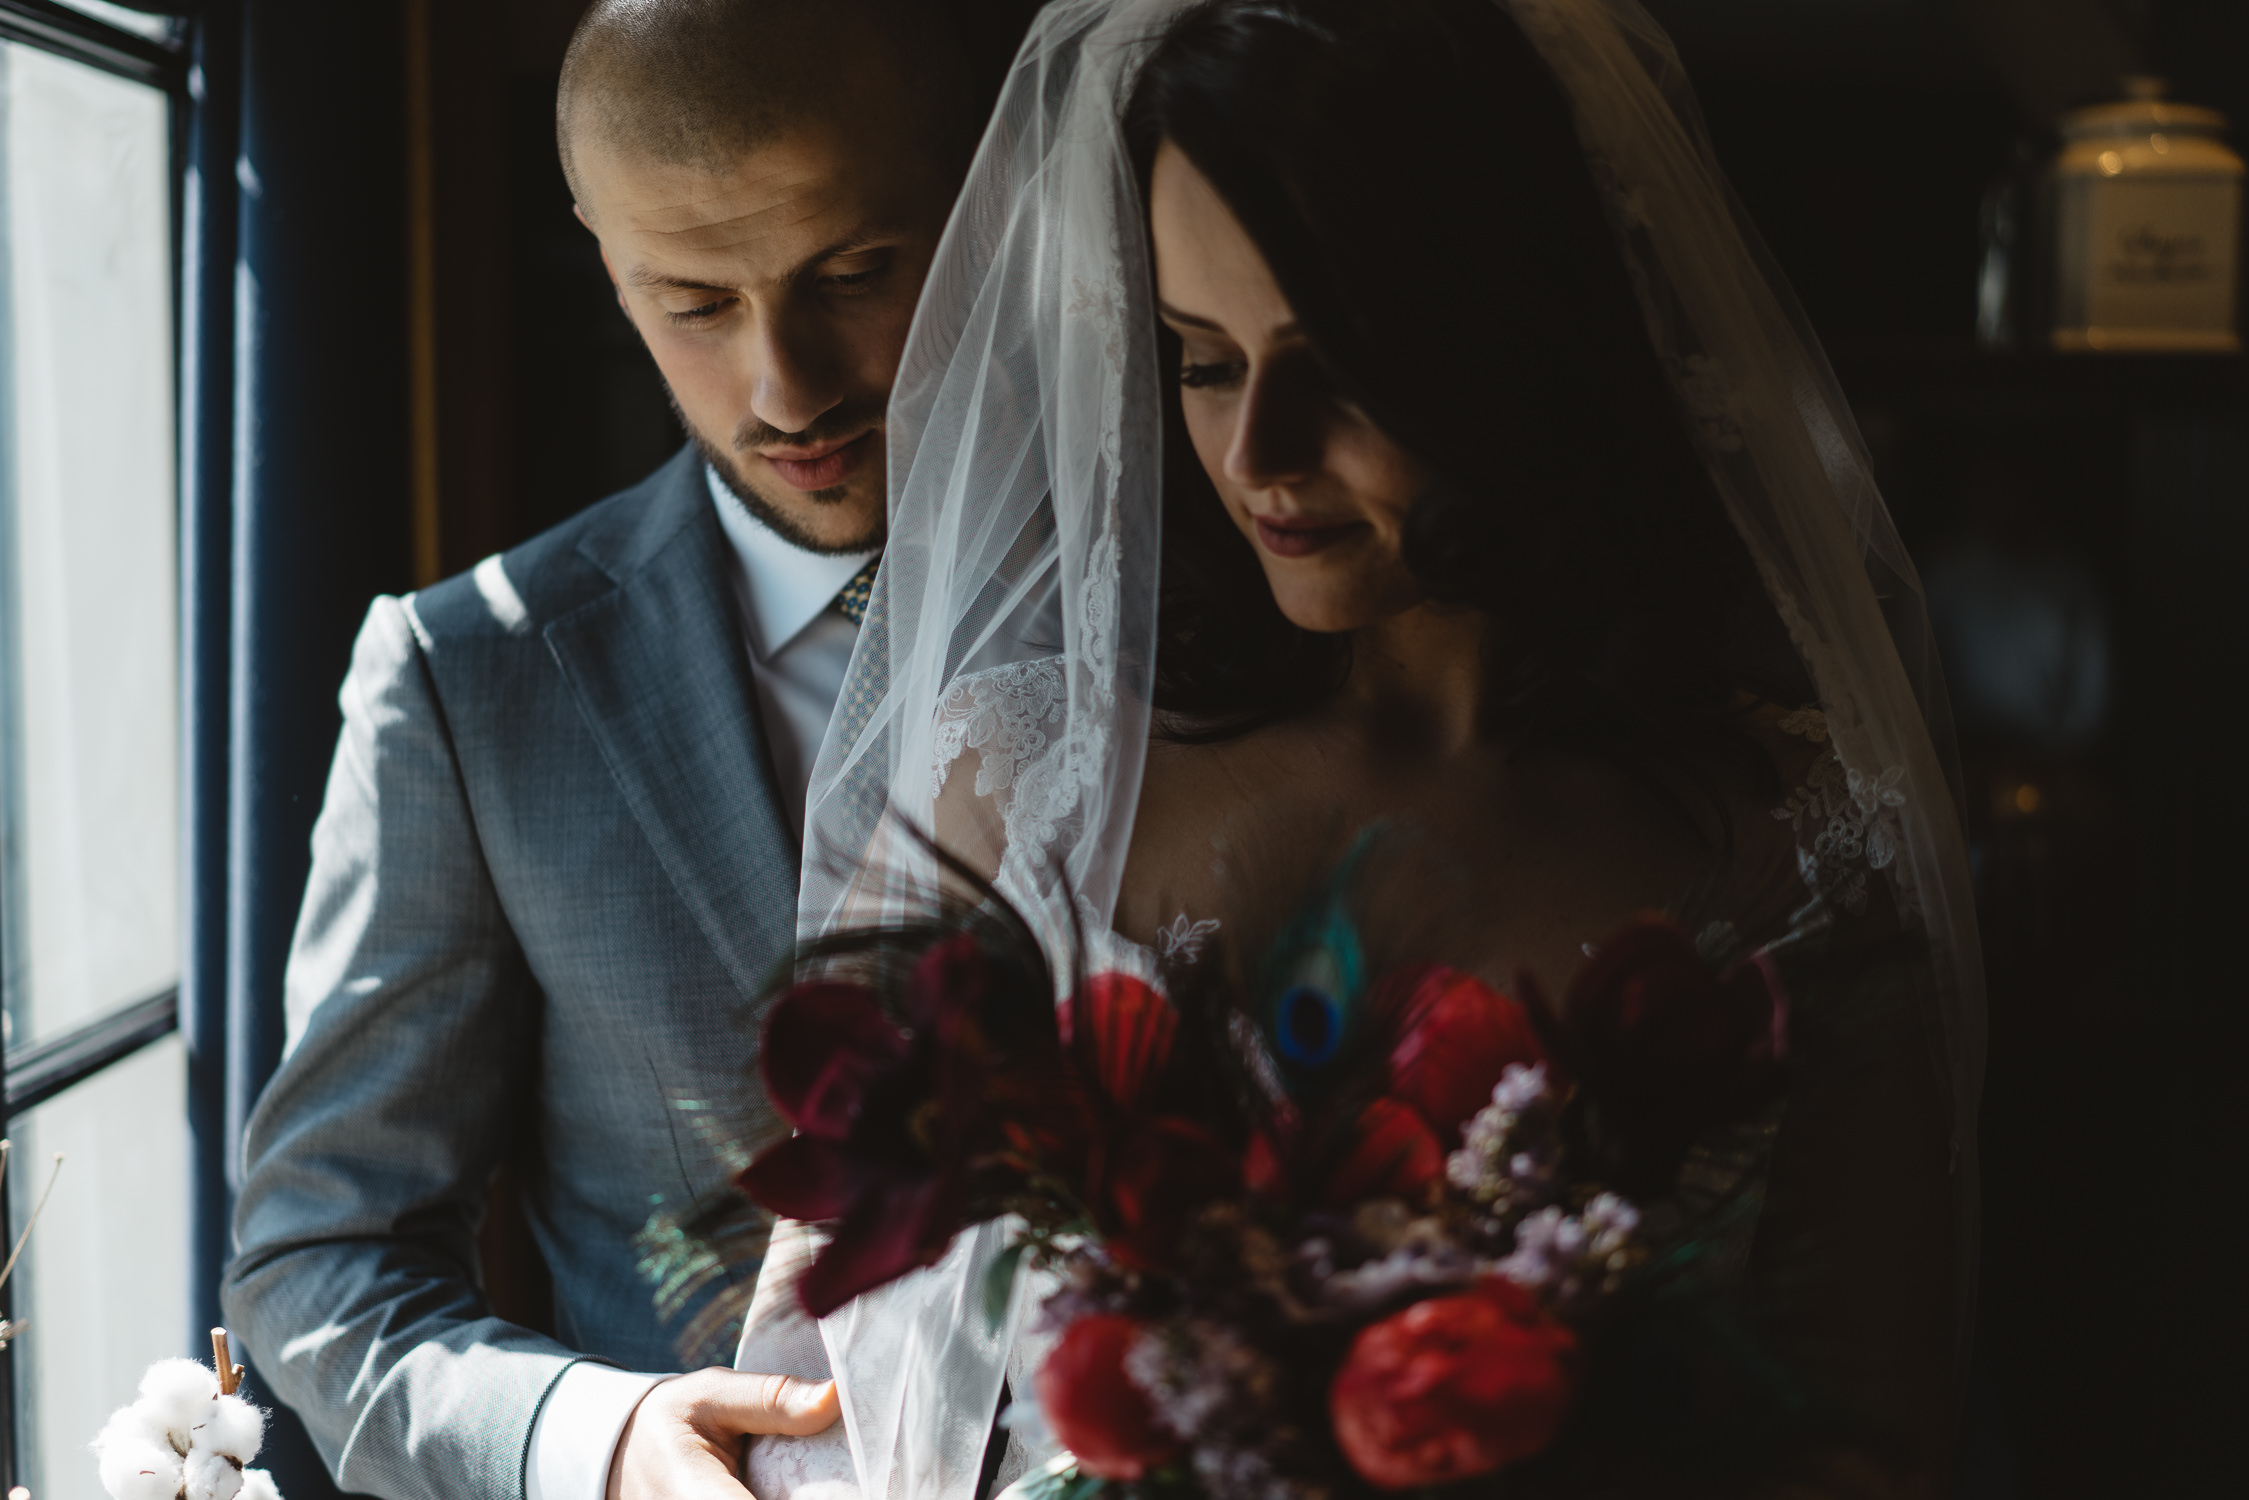 portrait photography from a wedding amsterdam